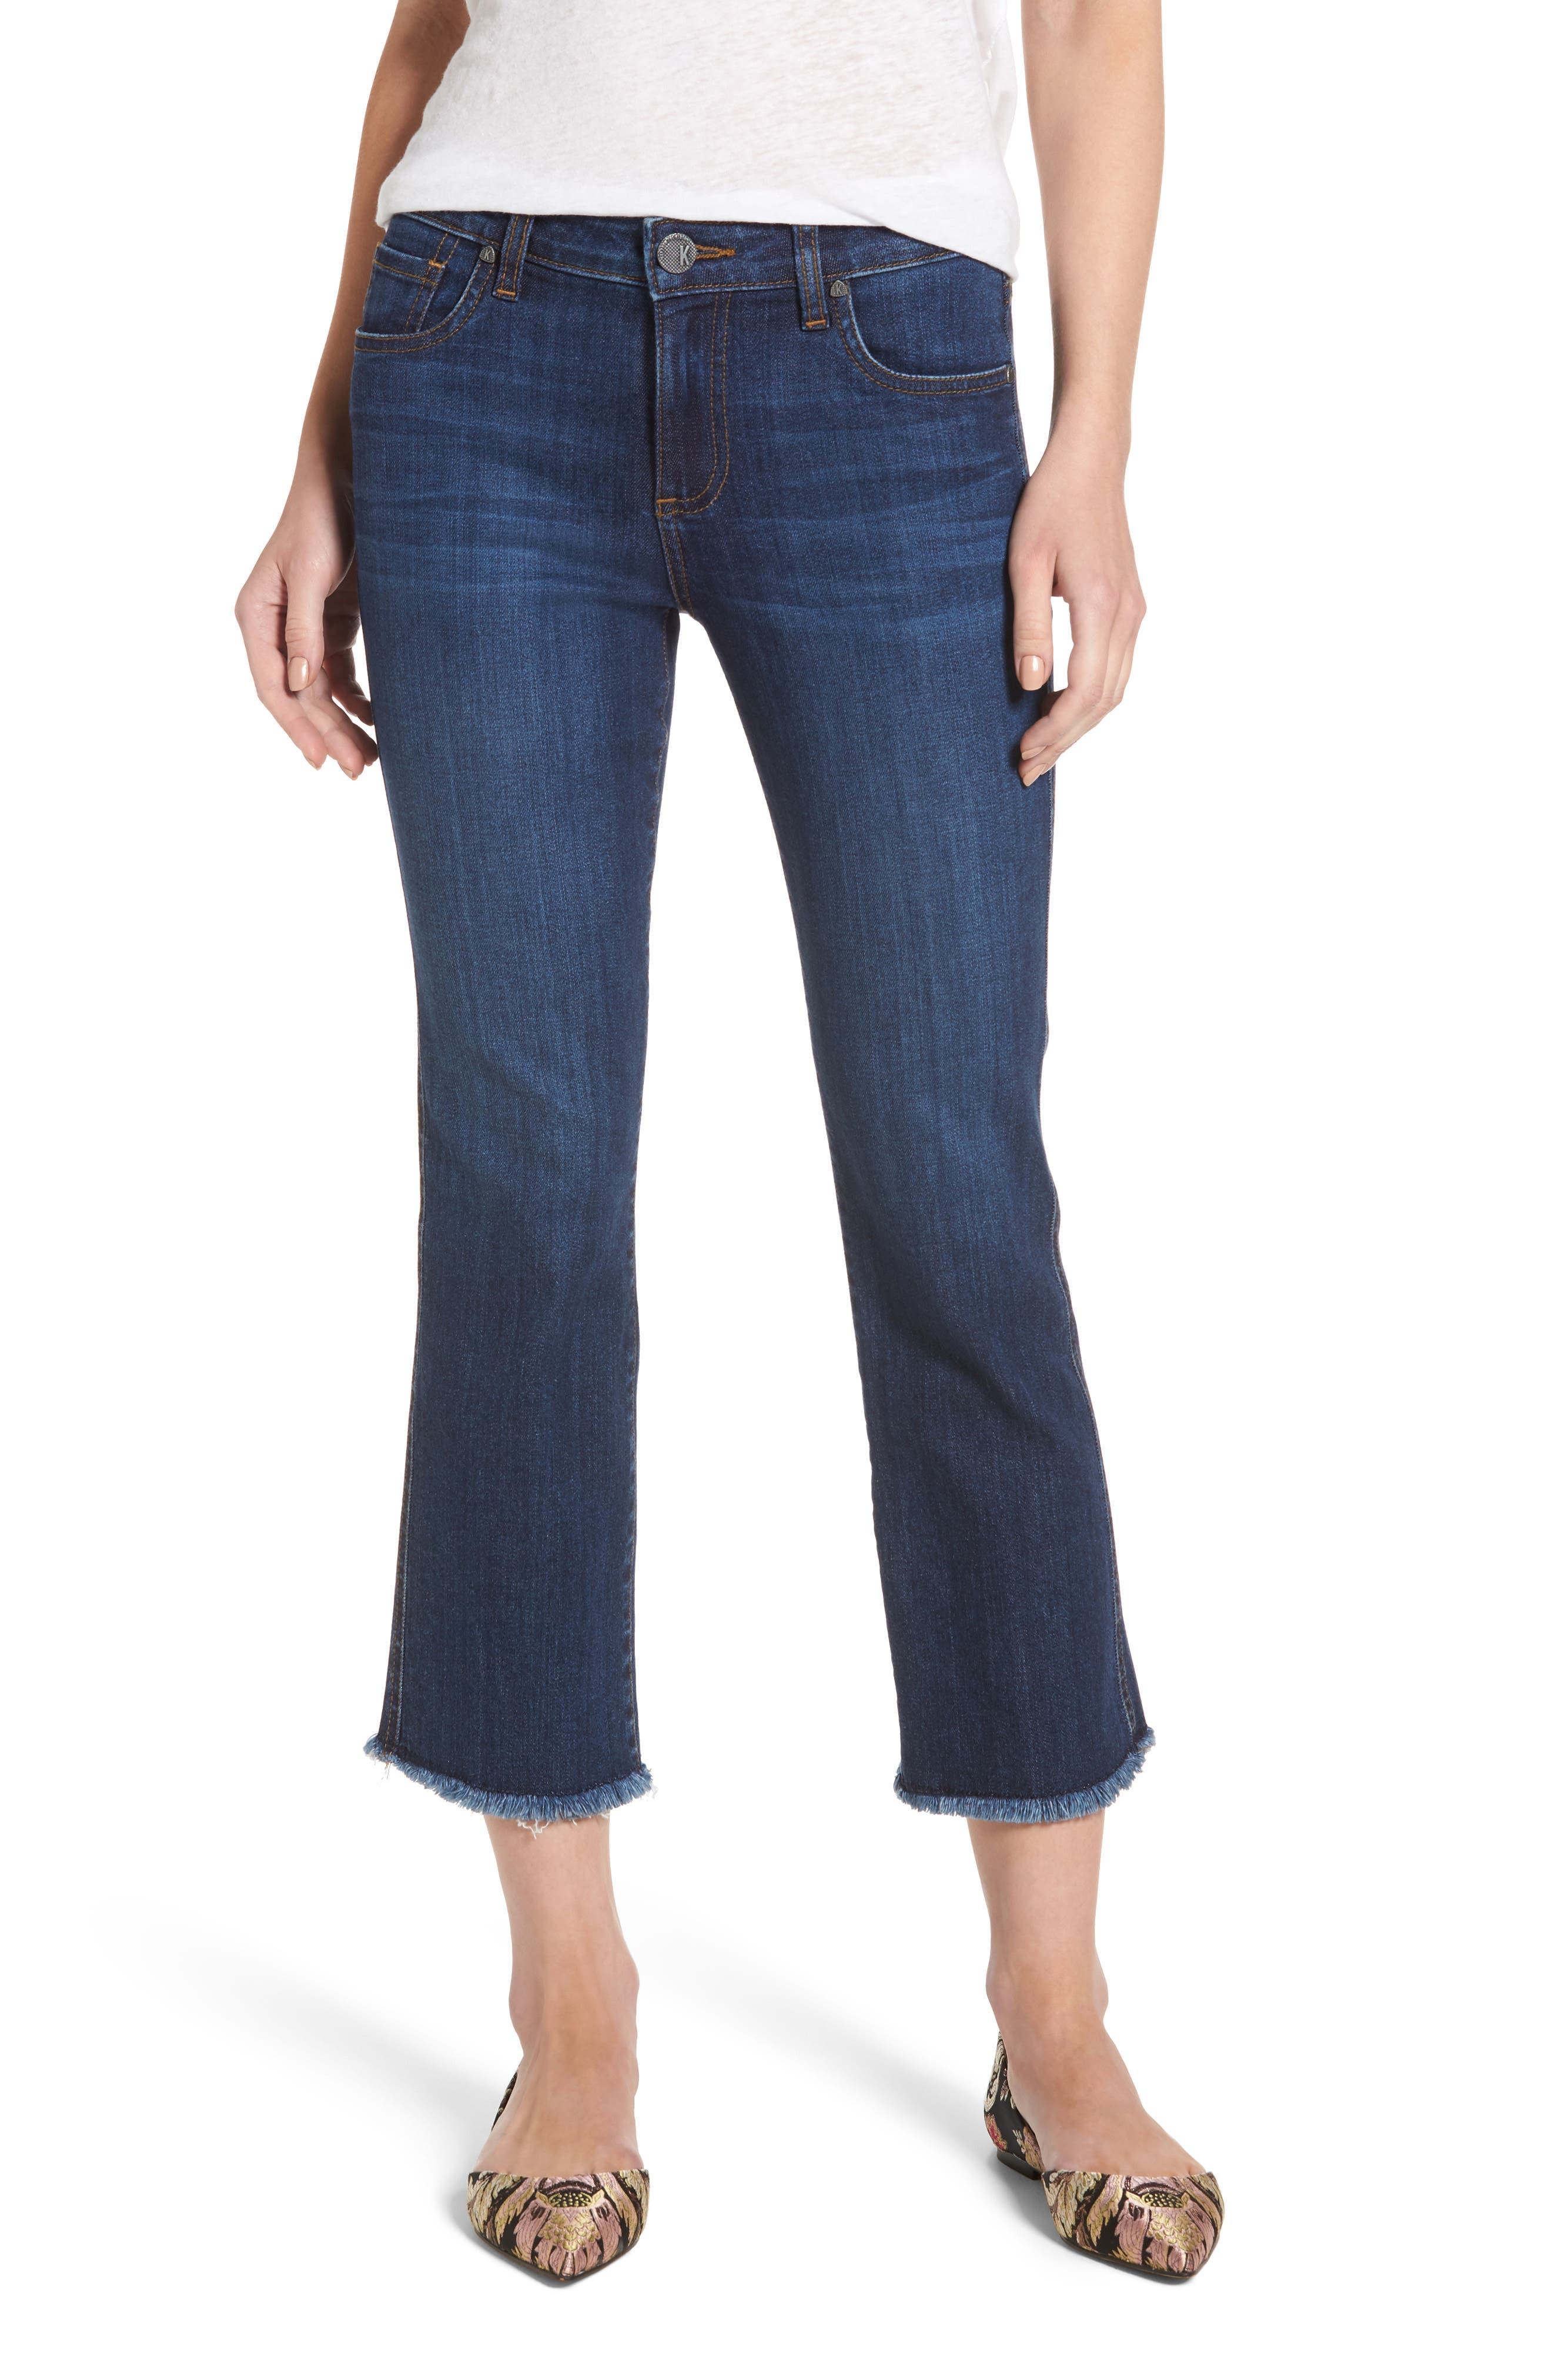 KUT from the Kloth Reese Frayed Ankle Jeans (Regular & Petite) (Upheld)